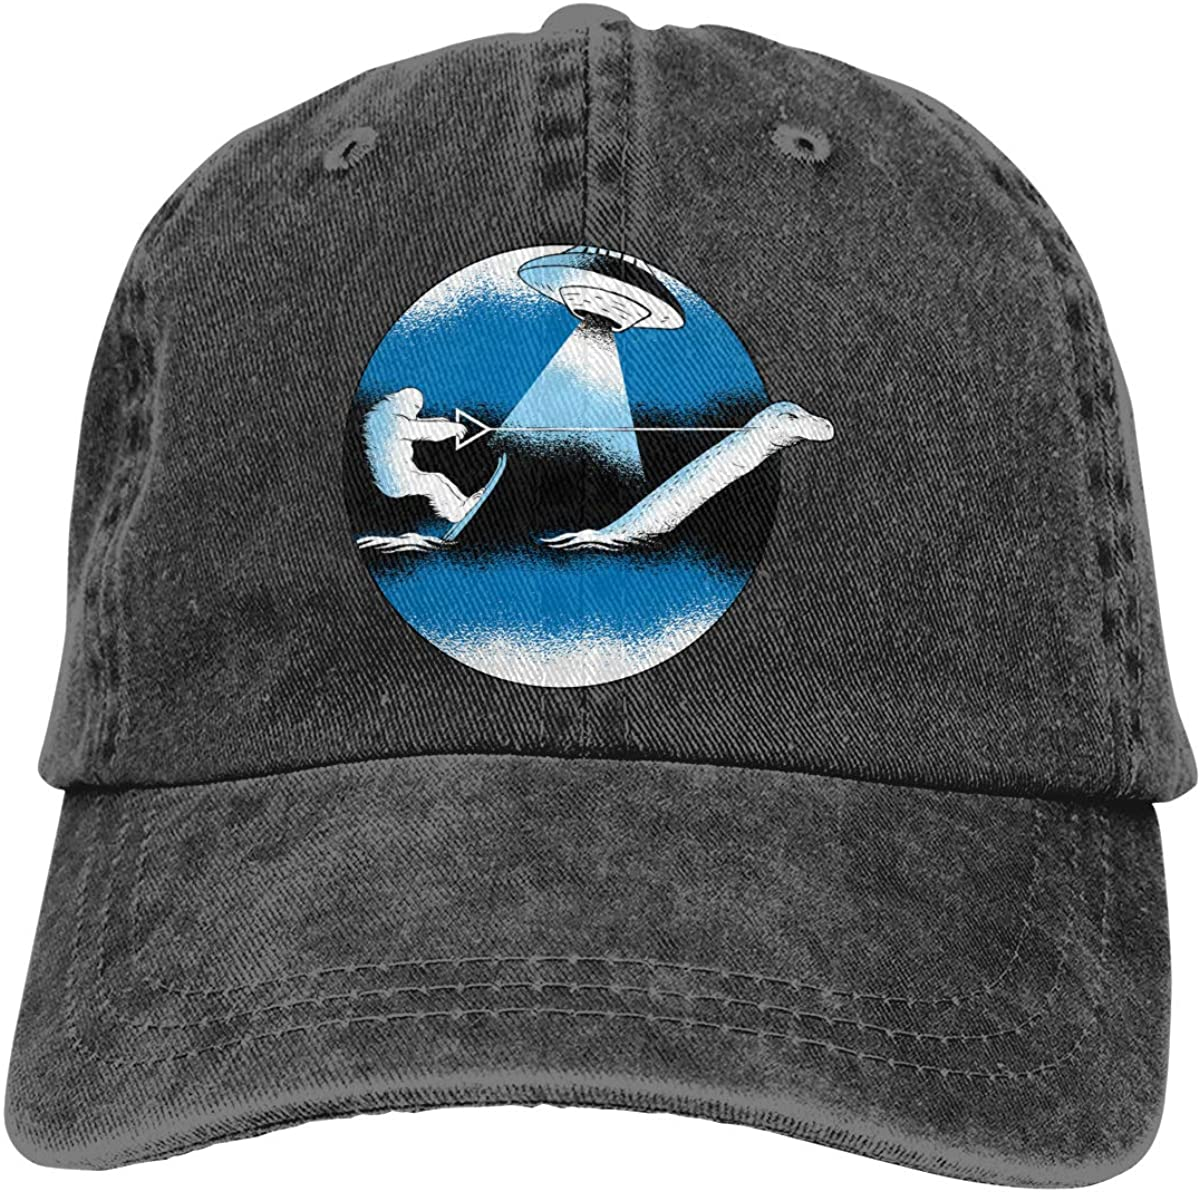 Unisex Bigfoot Water Ski with Loch Ness Vintage Washed Dad Hat Cool Adjustable Baseball Cap